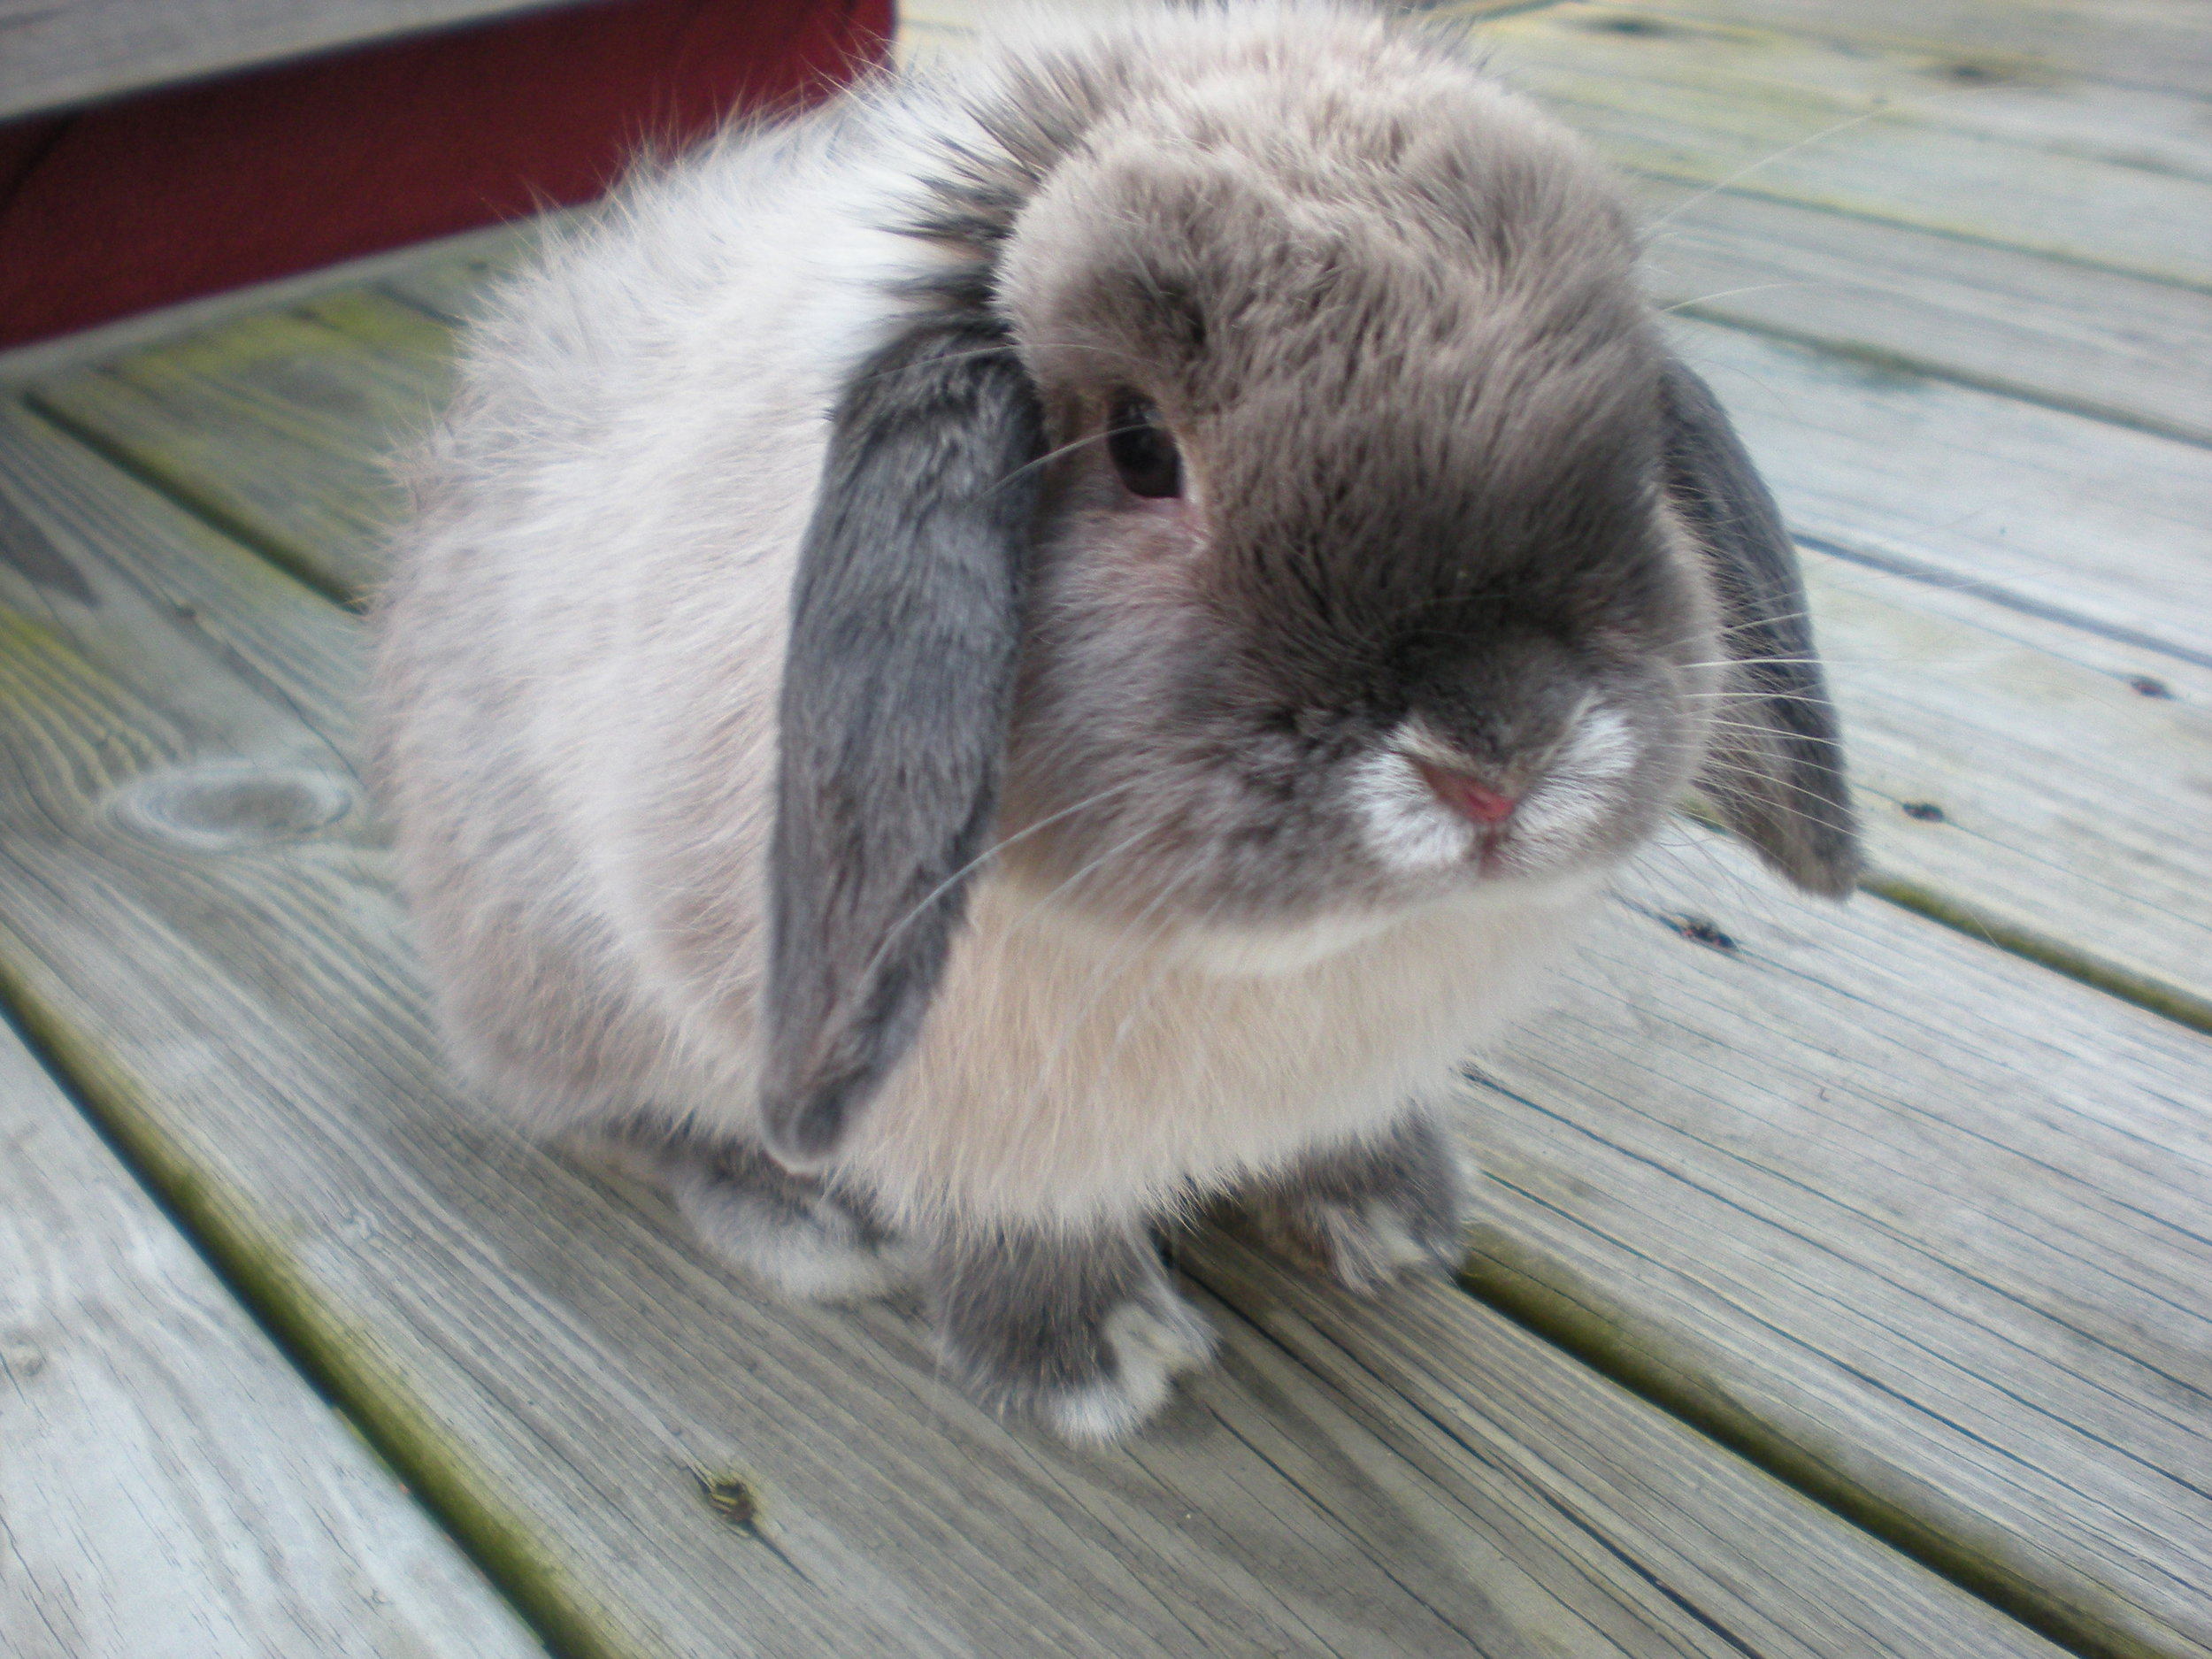 Bunny Is Round and Fluffy